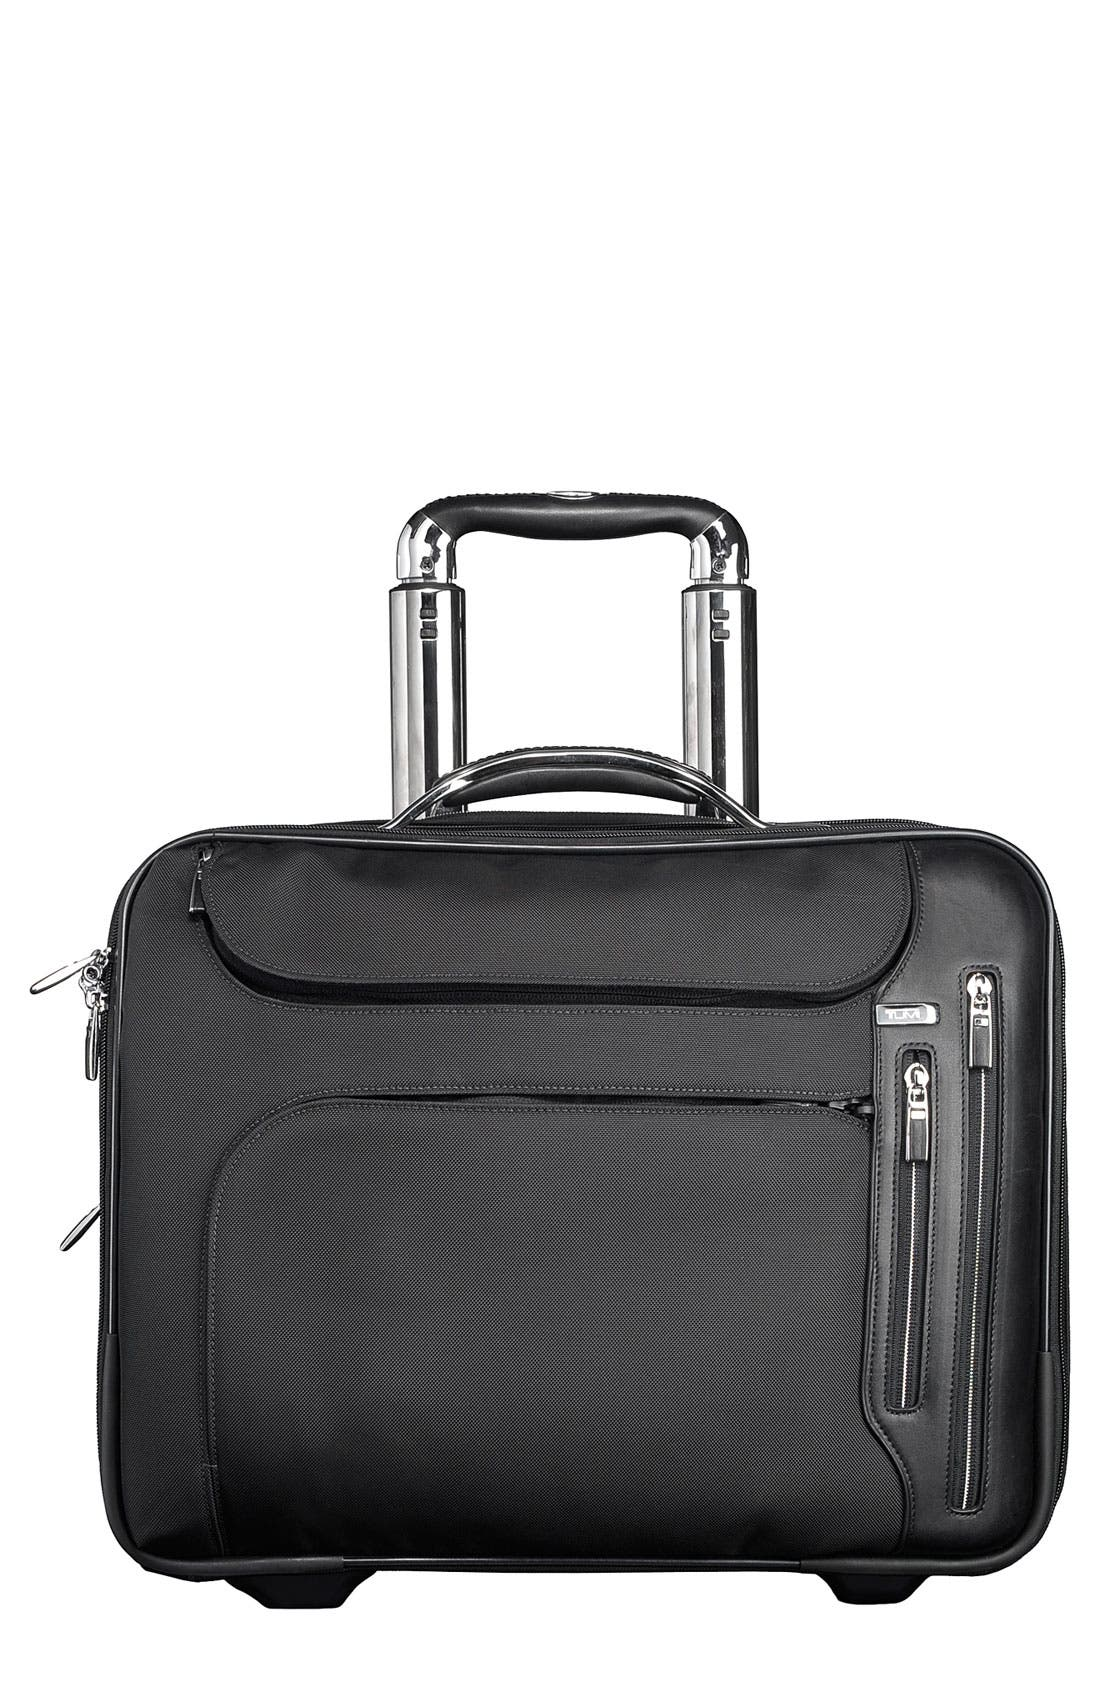 'Arrive - LaGuardia' Wheeled Briefcase with Laptop Insert, Main, color, 001